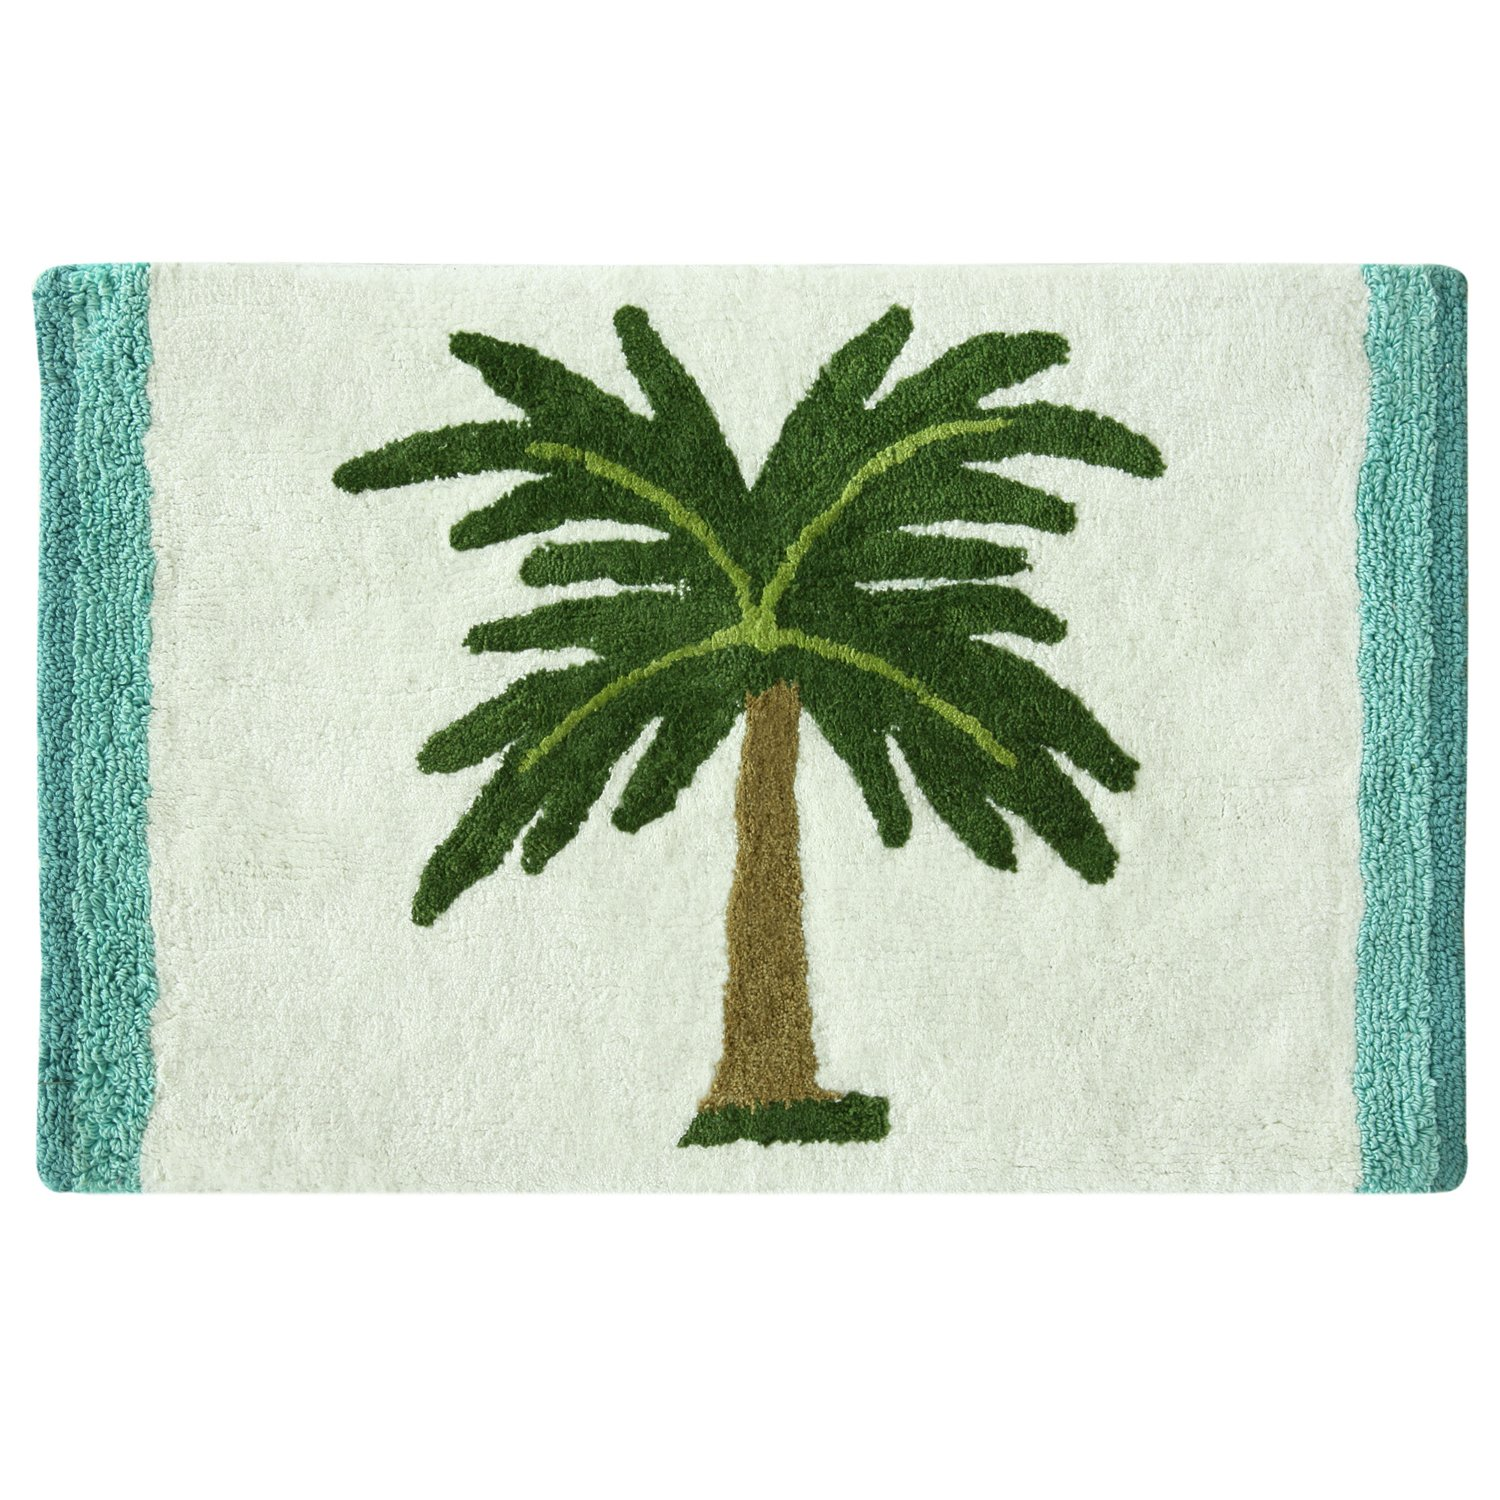 20 x 30 Bath Rug 20X30 Bacova Guild Palm Tree